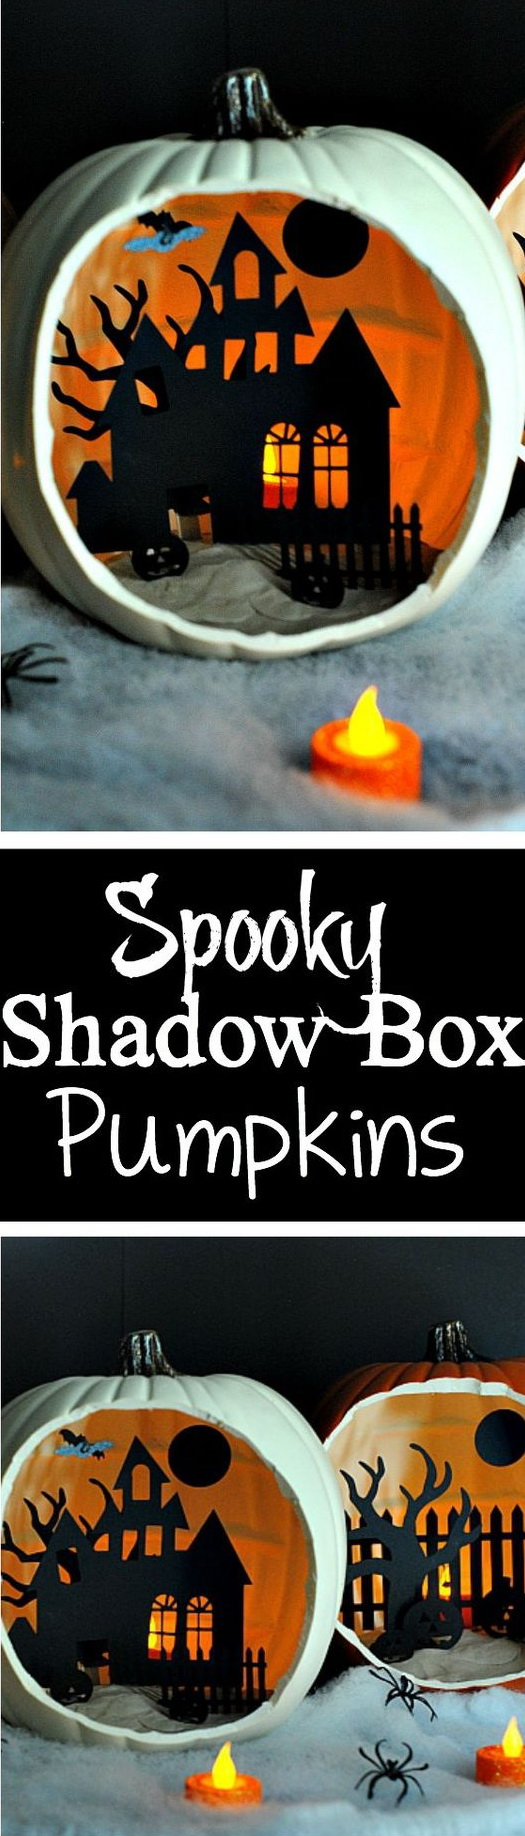 DIY Shadow Box Pumpkins.